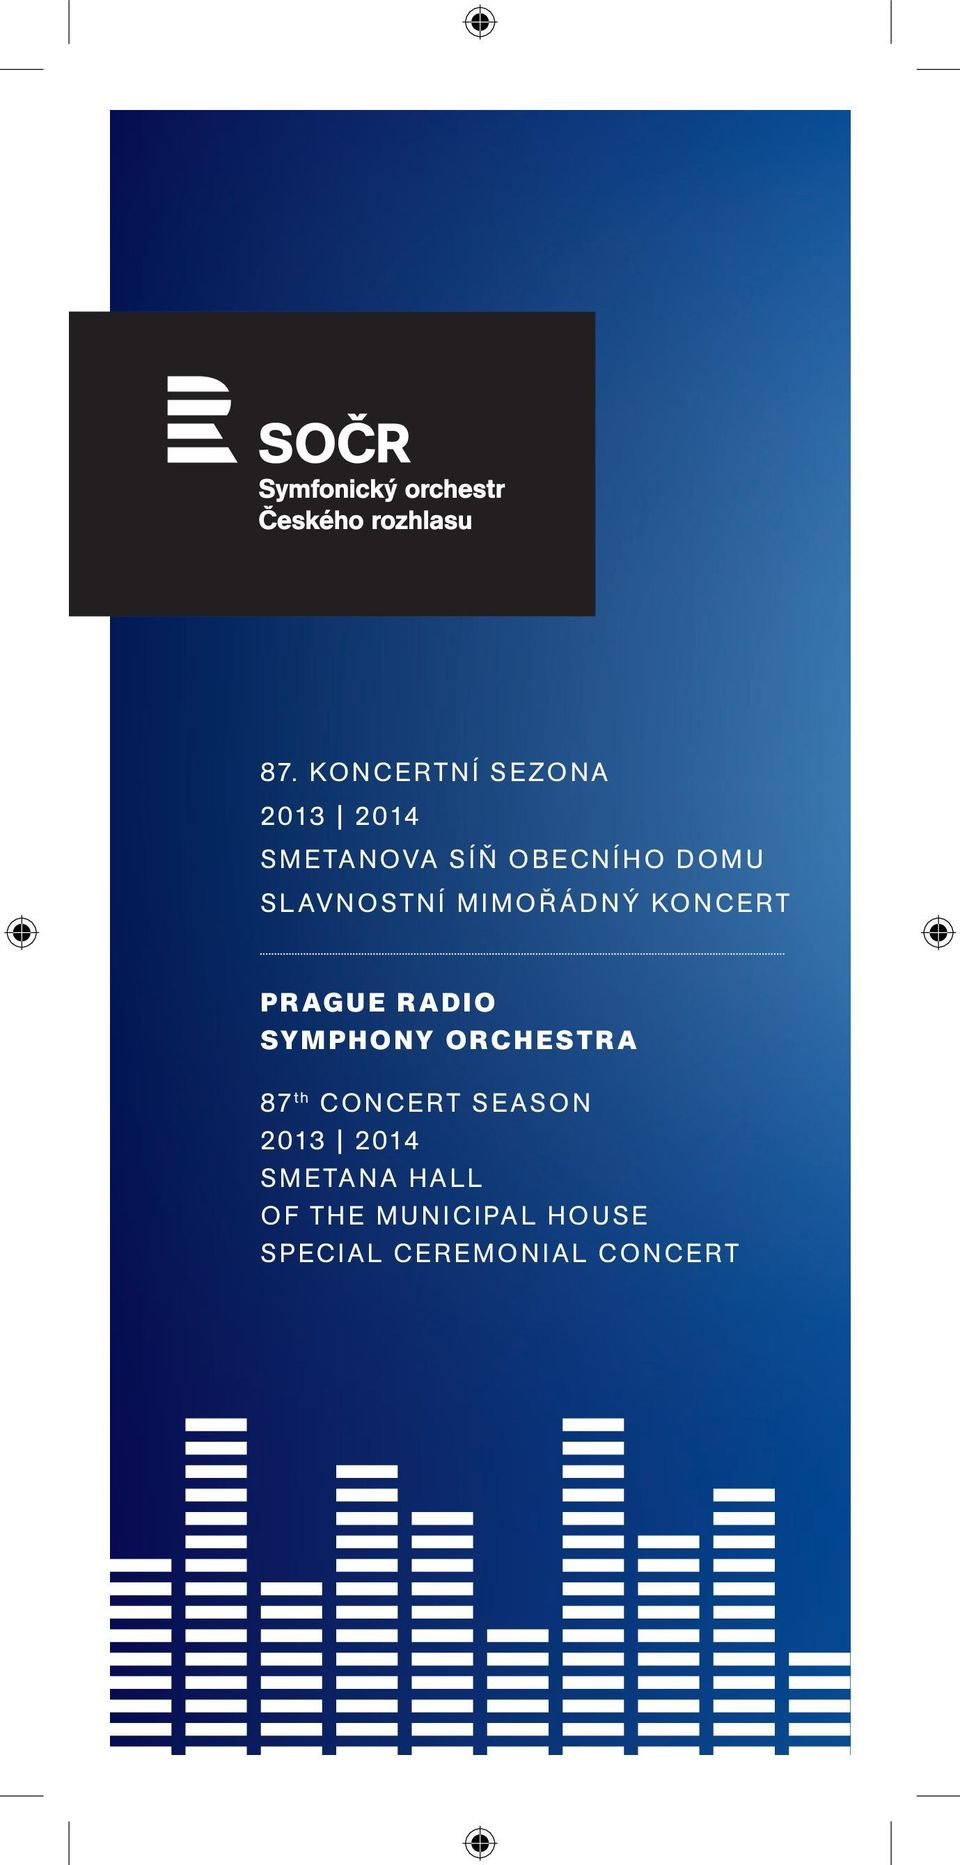 Symphony Orchestra 87 th concert season 2013 2014